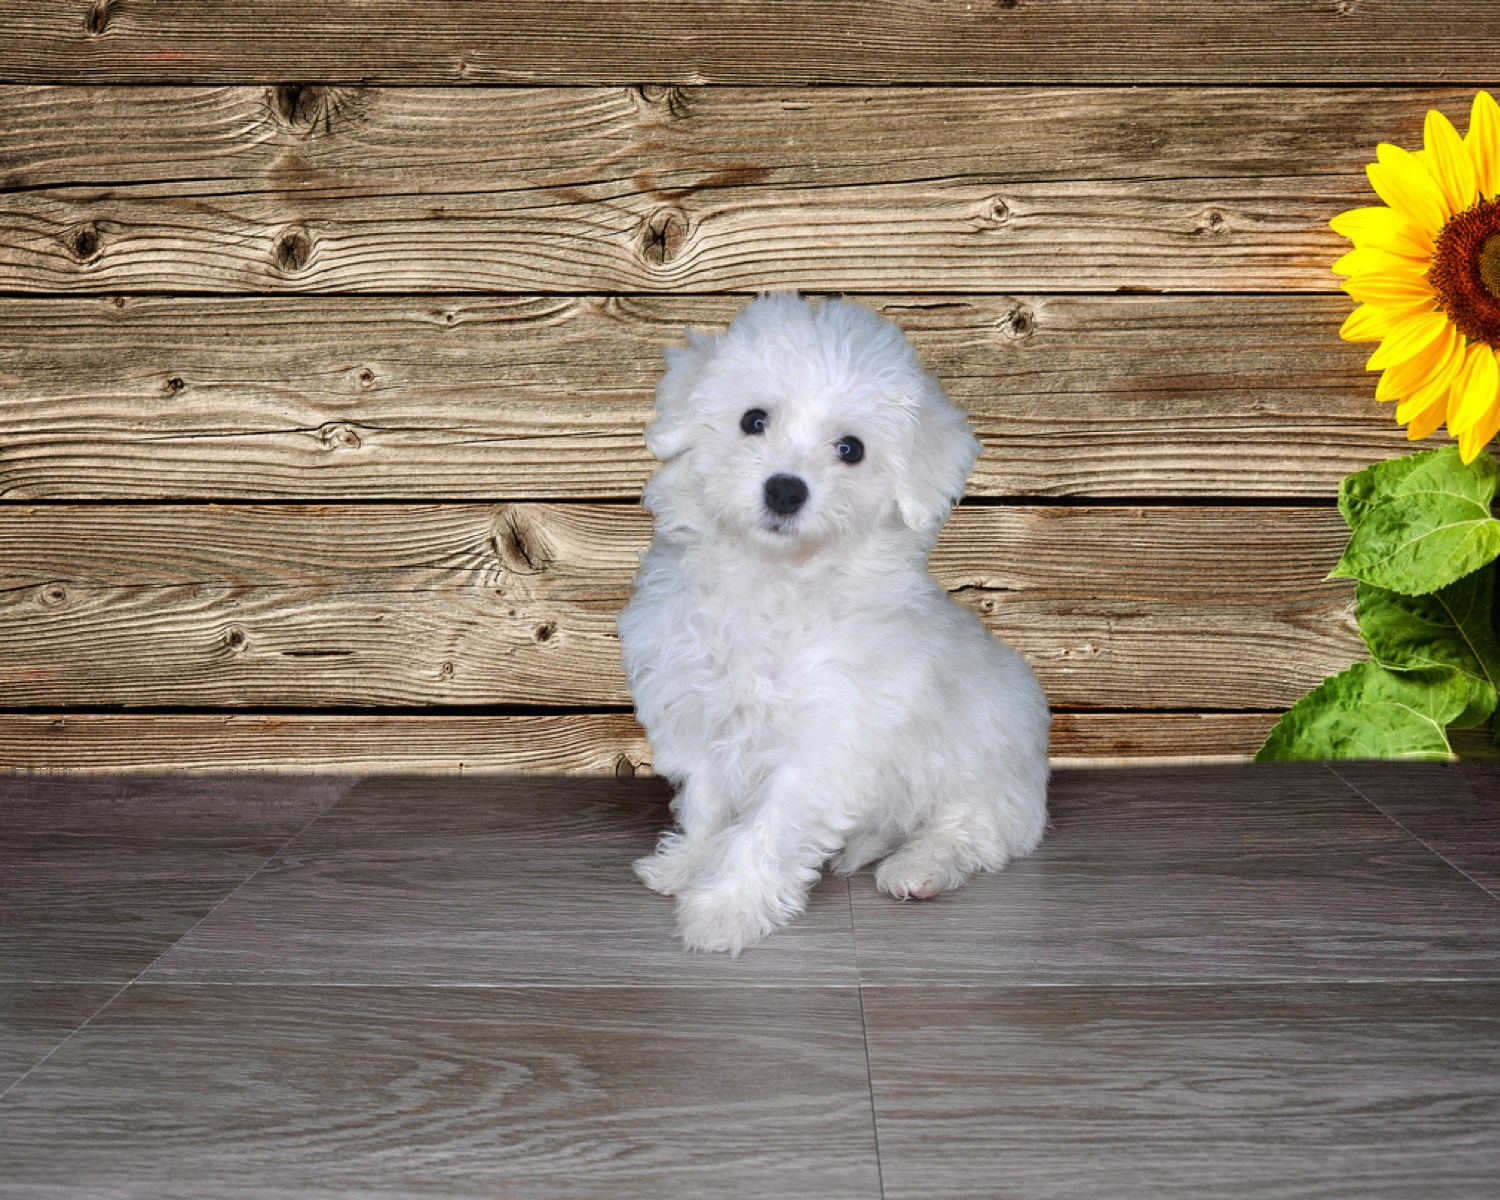 AKC Registered male Bichon Frise